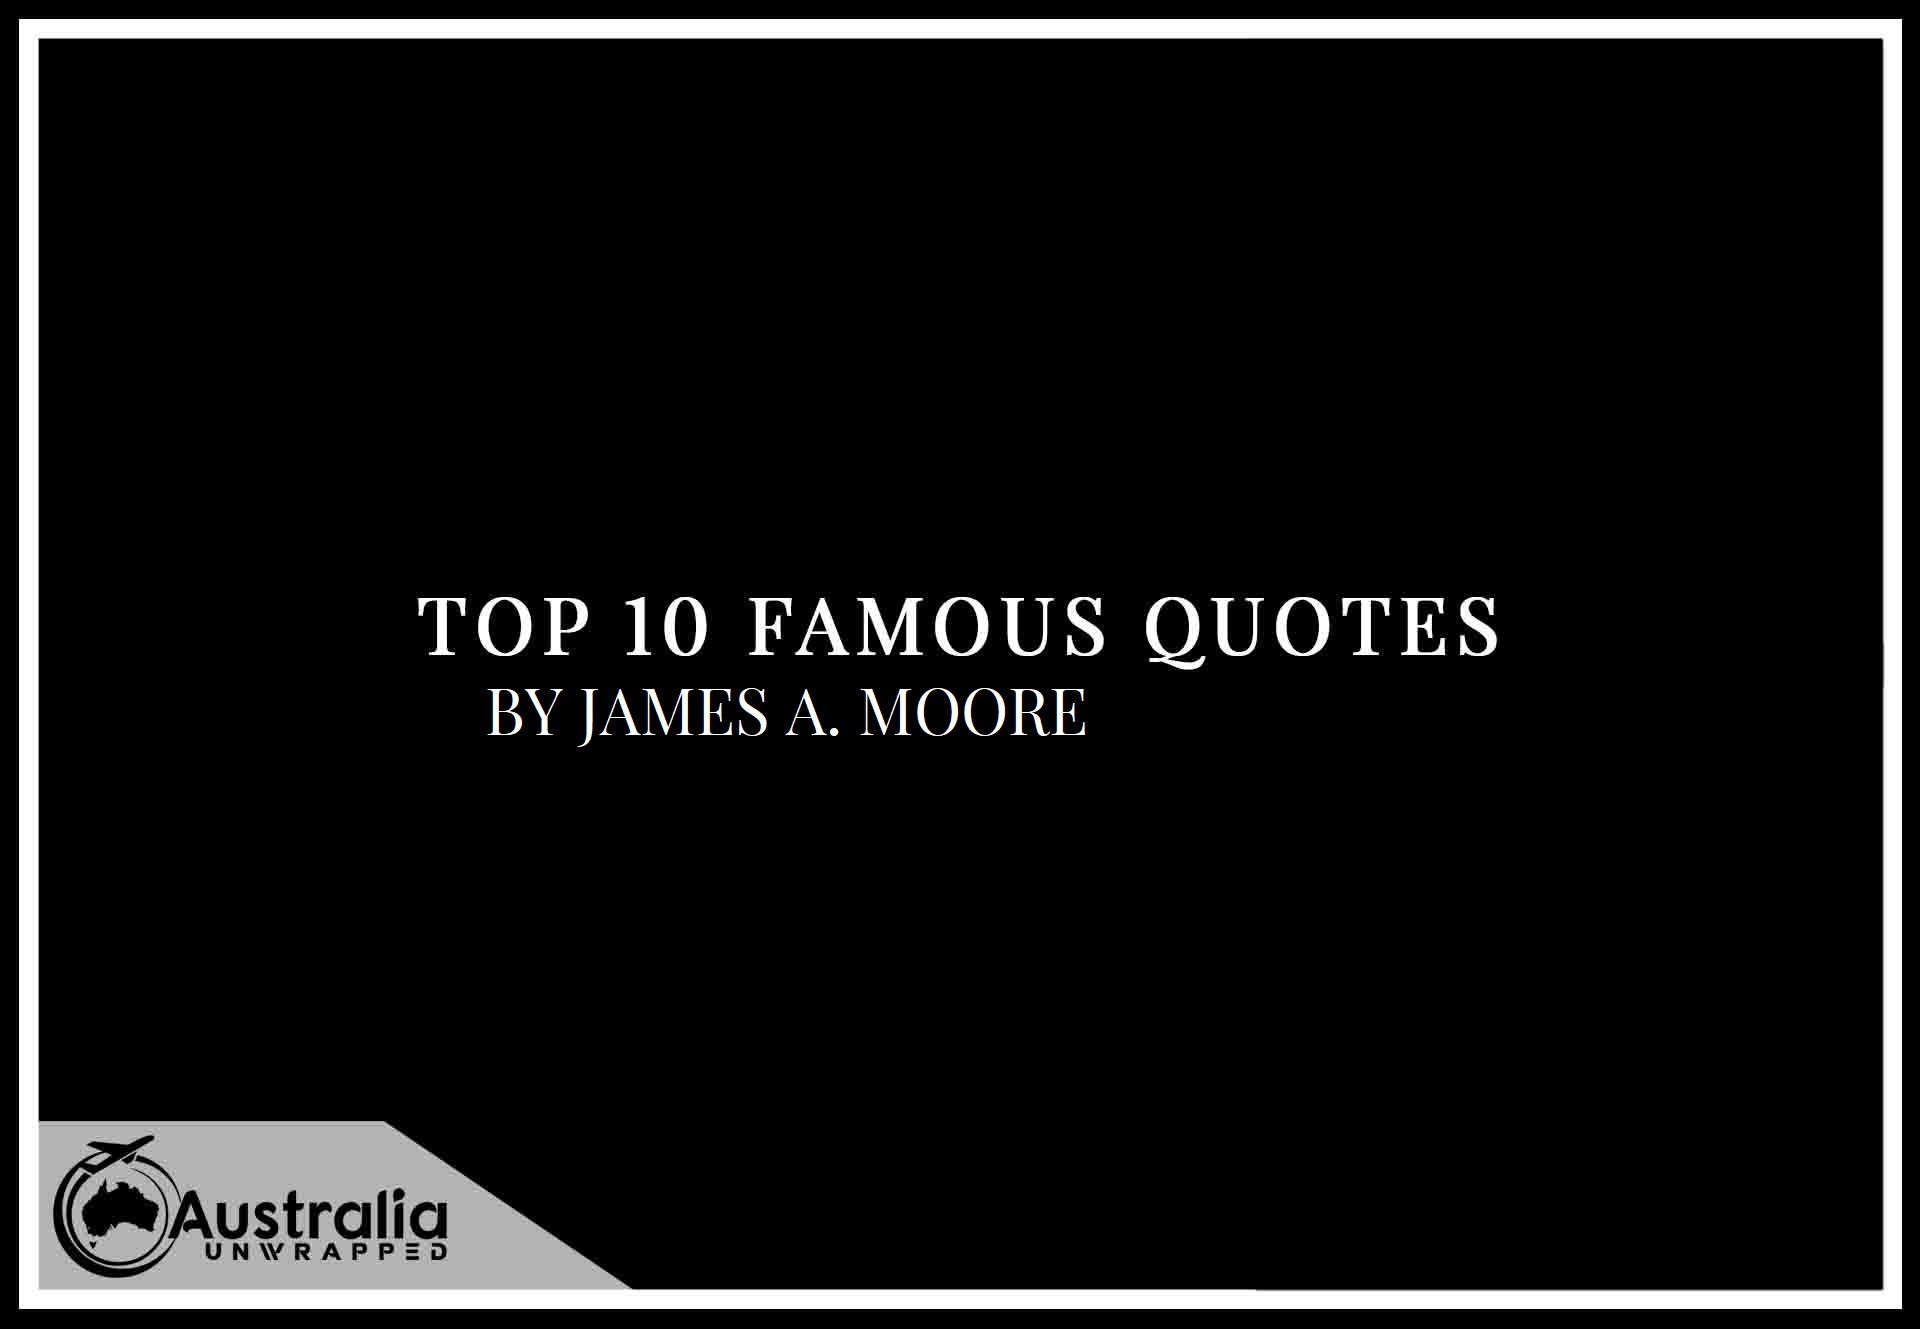 Top 10 Famous Quotes by Author James A. Moore